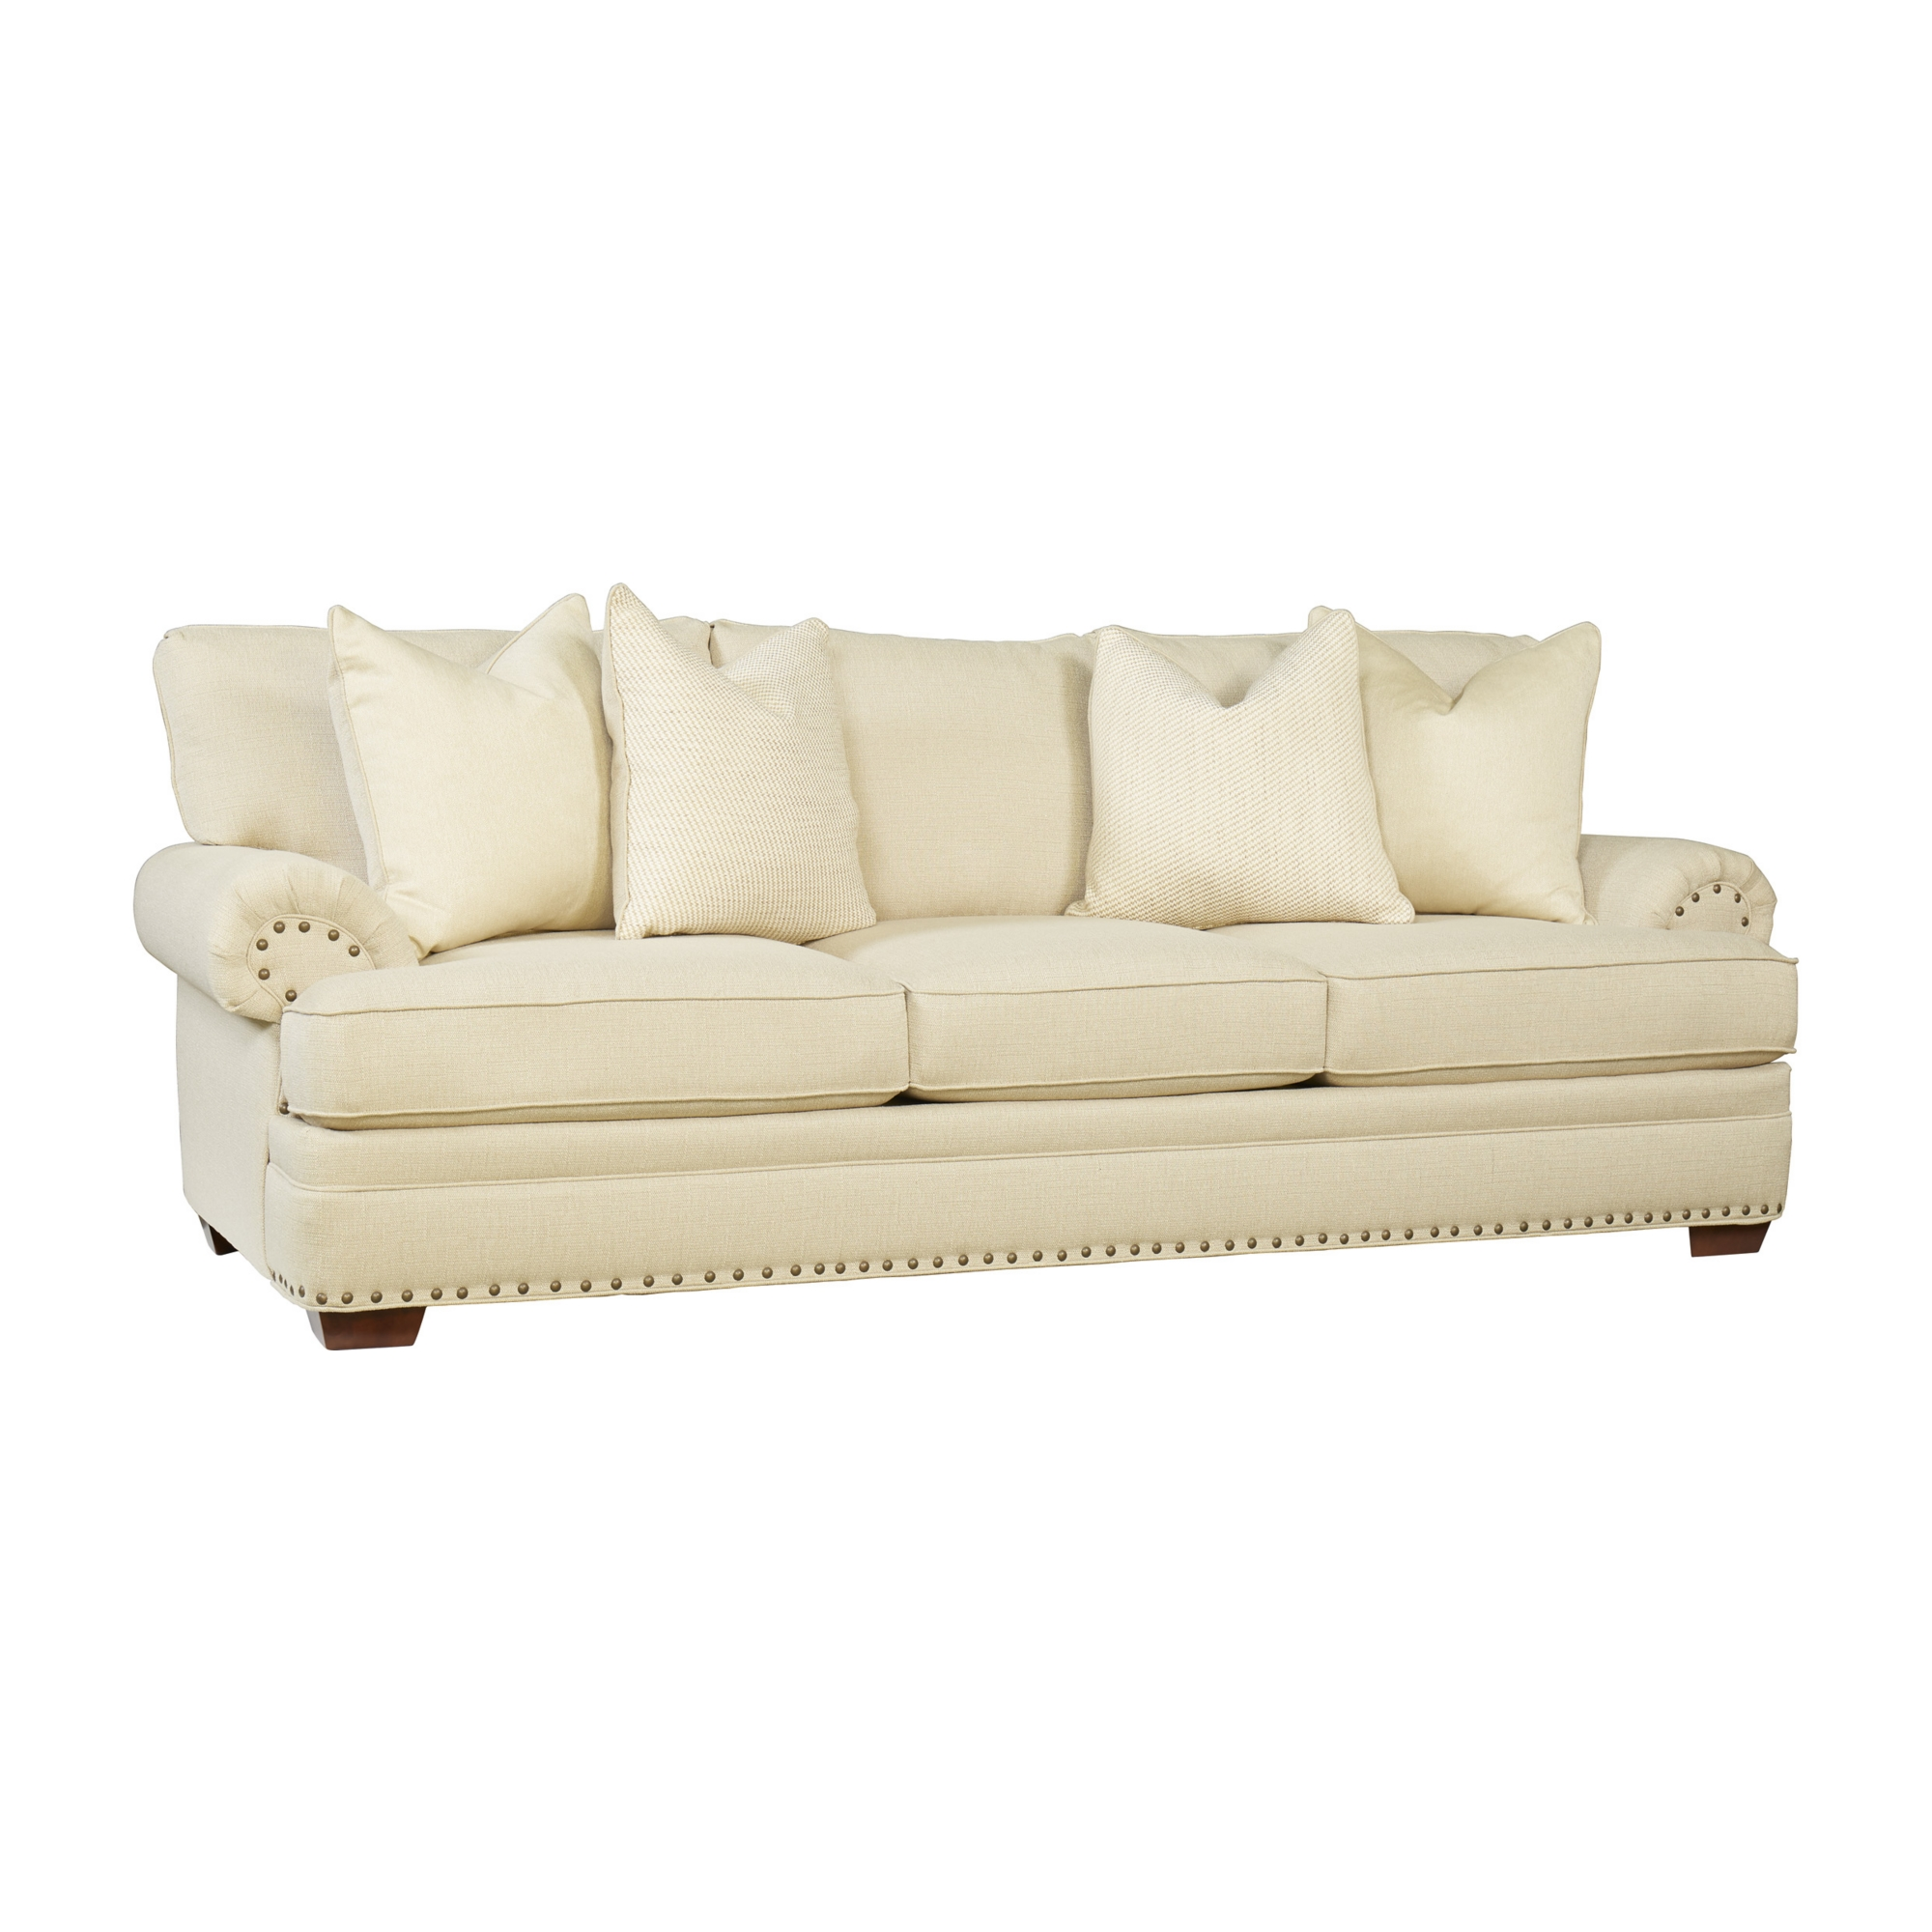 Havertys sofa contemporary style living room with havertys for Havertys furniture